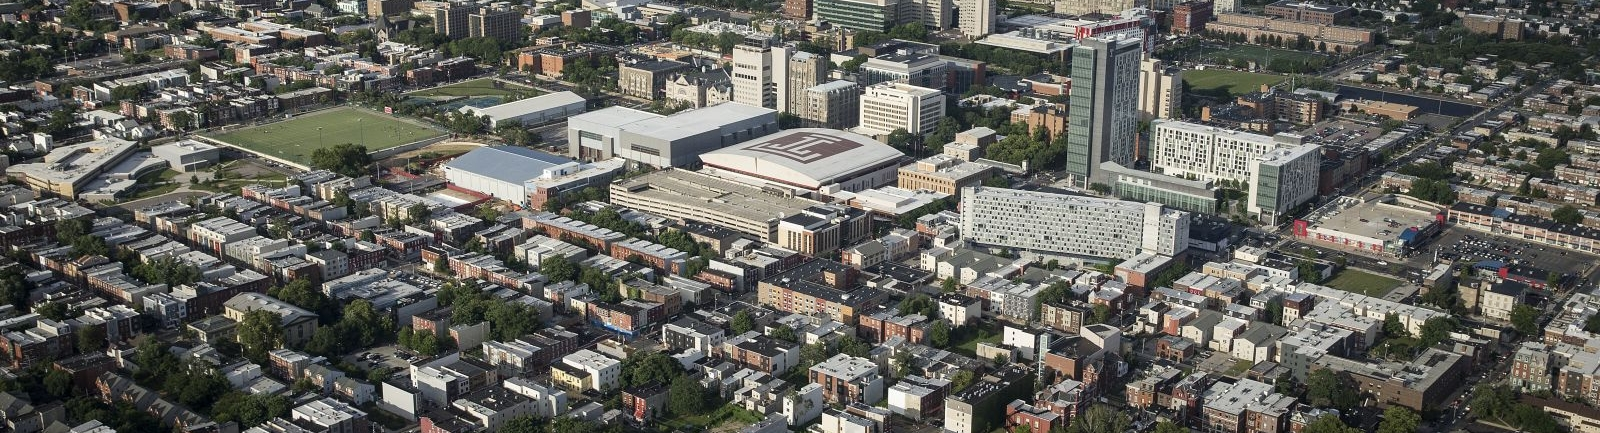 Aerial view of Temple campus with surrounding Philadelphia cityscape